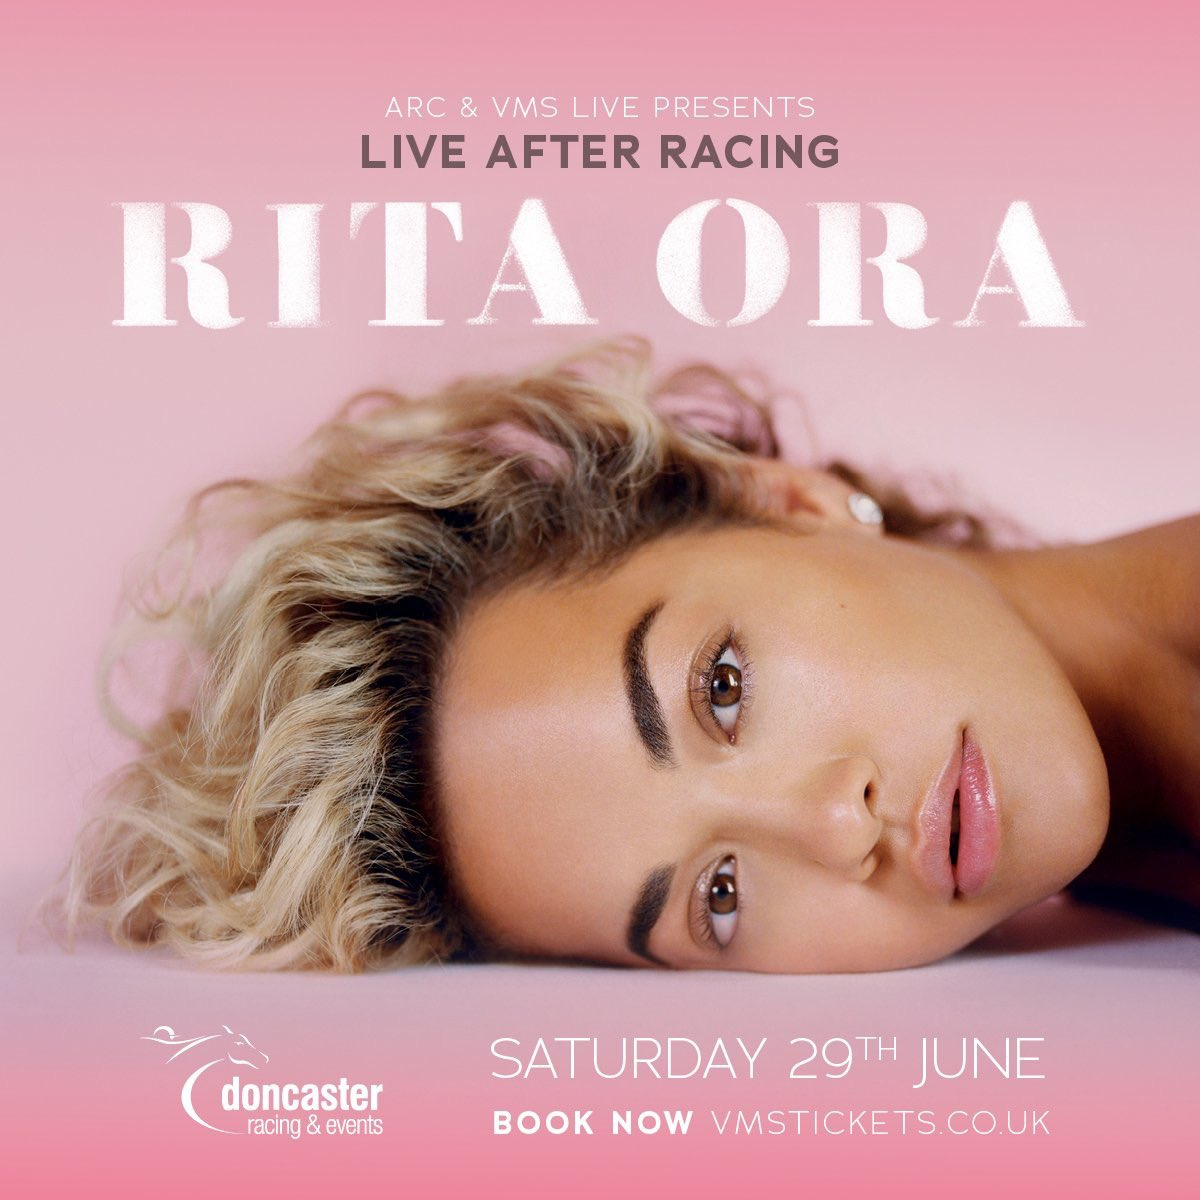 .@DoncasterRaces 29th June!!! Who's going? ❤️ https://t.co/Z1F1sTPzo4